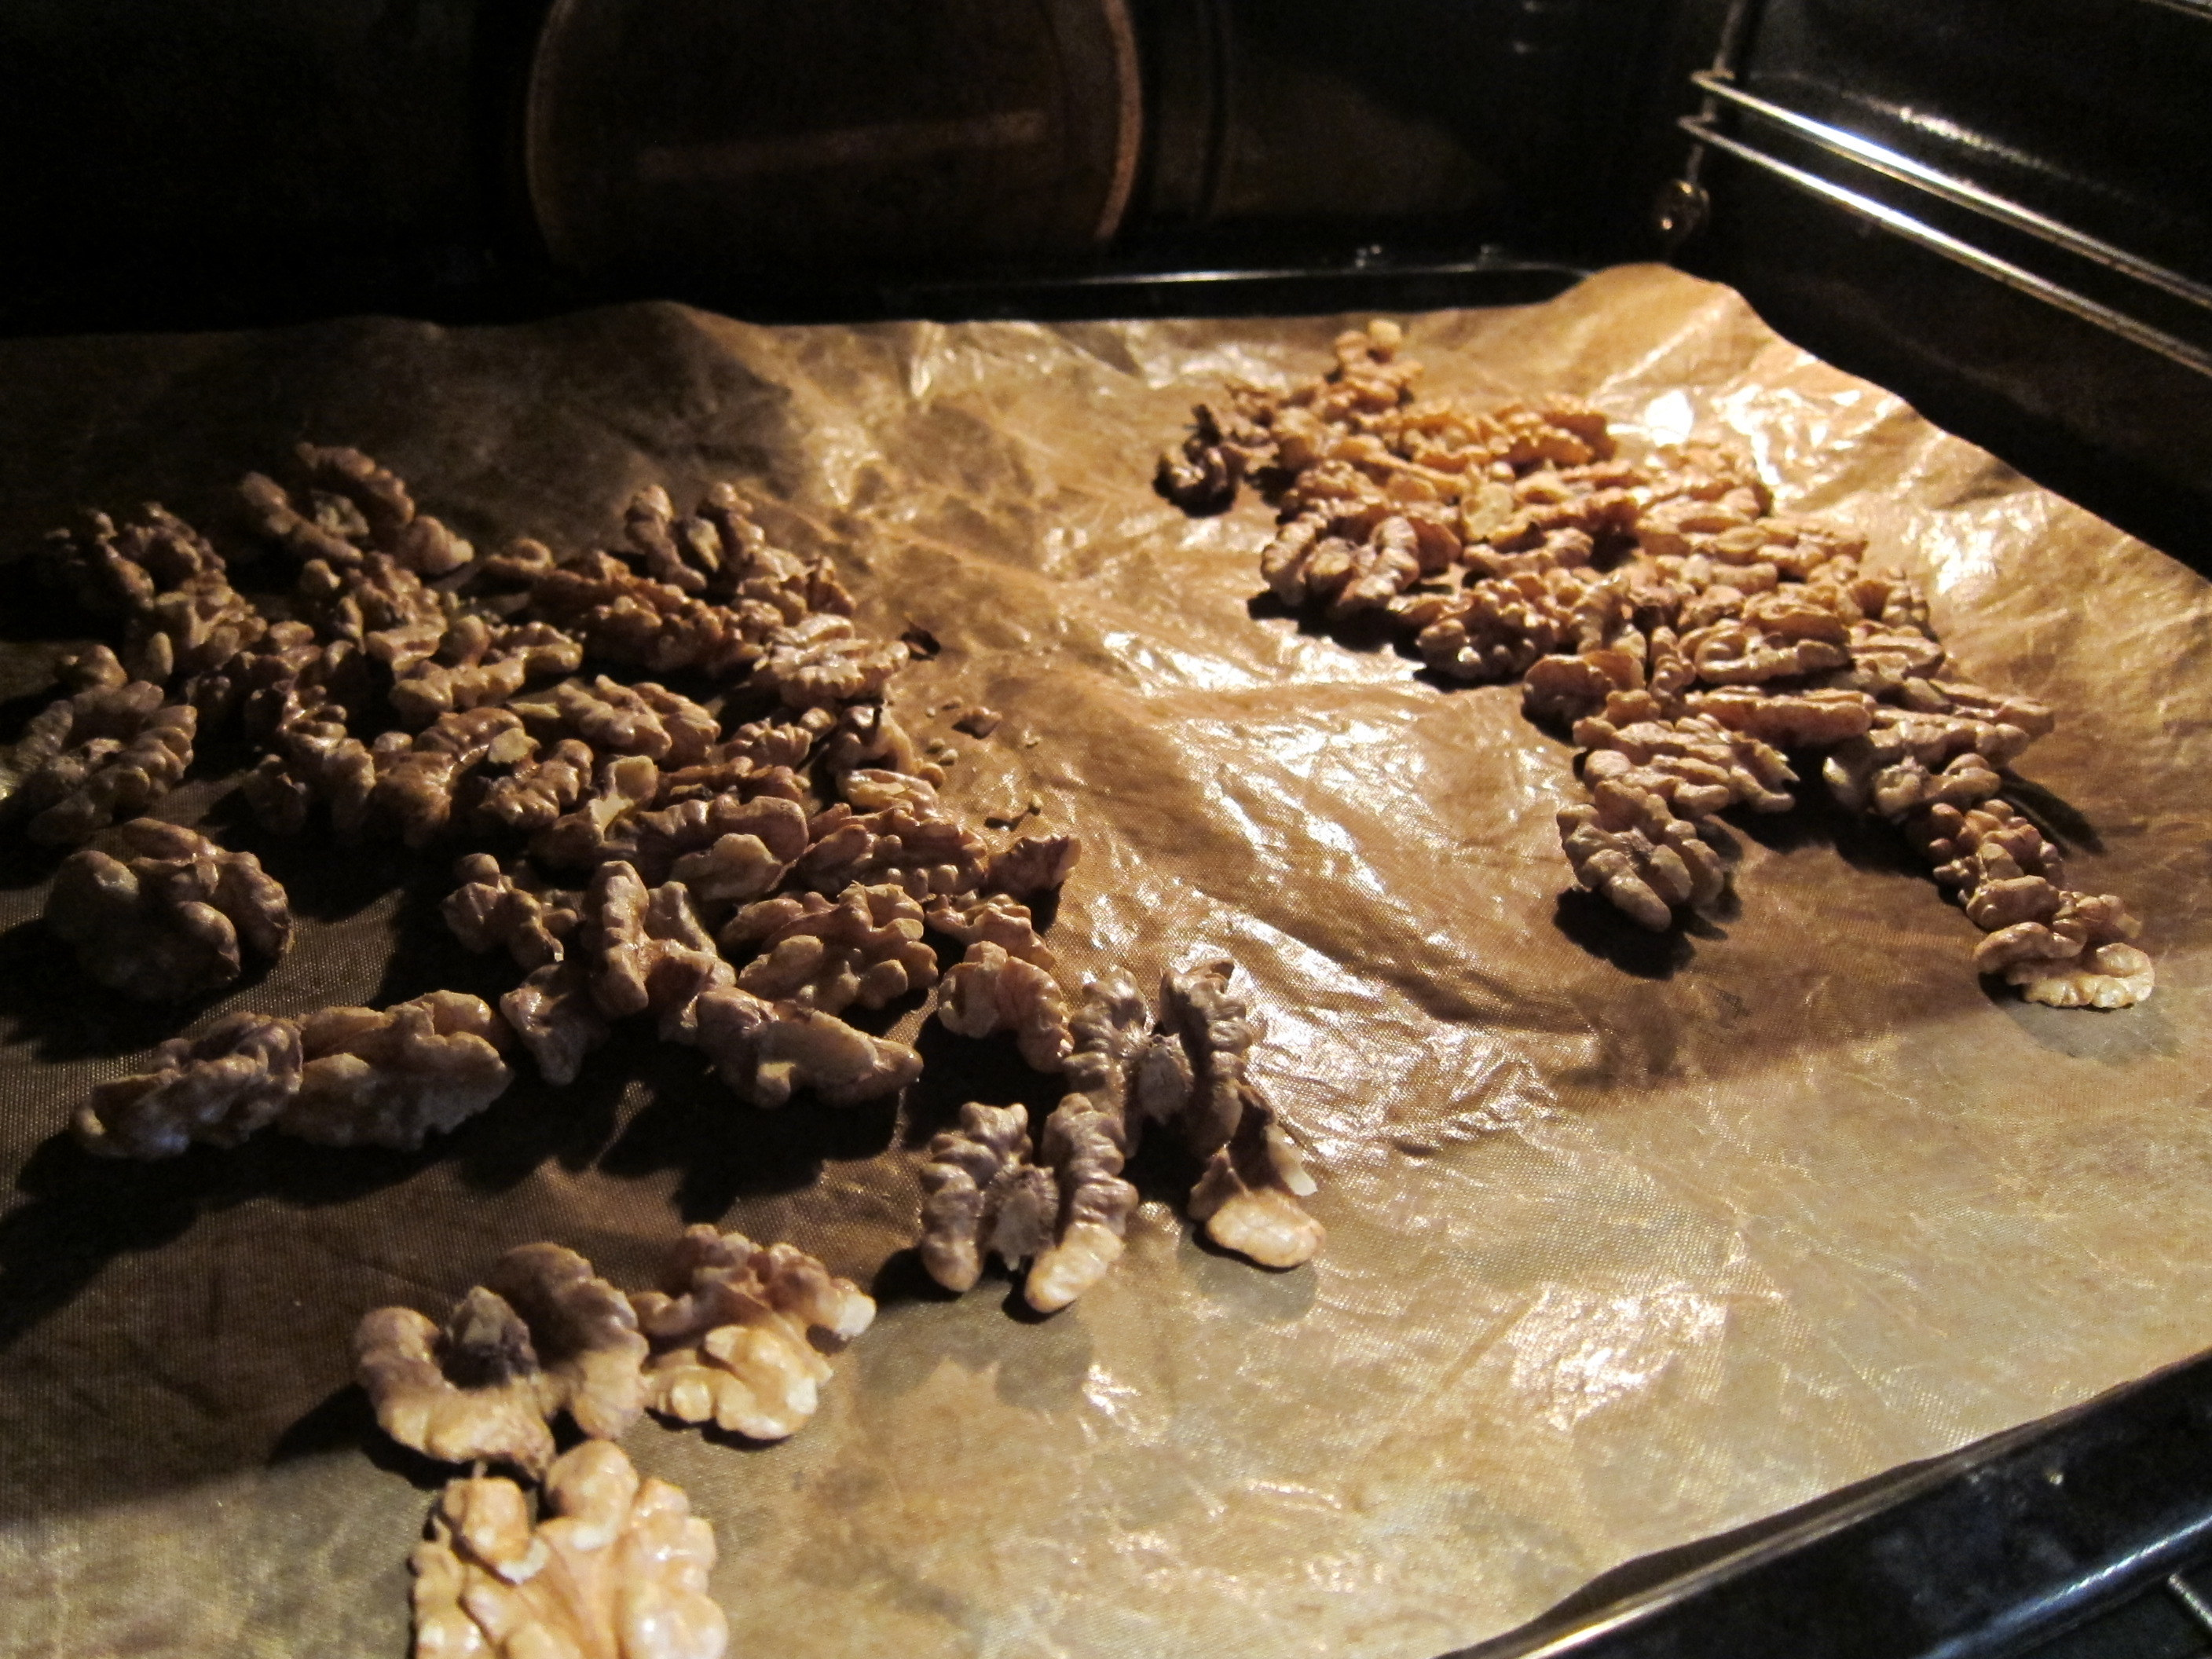 Walnuts being roasted